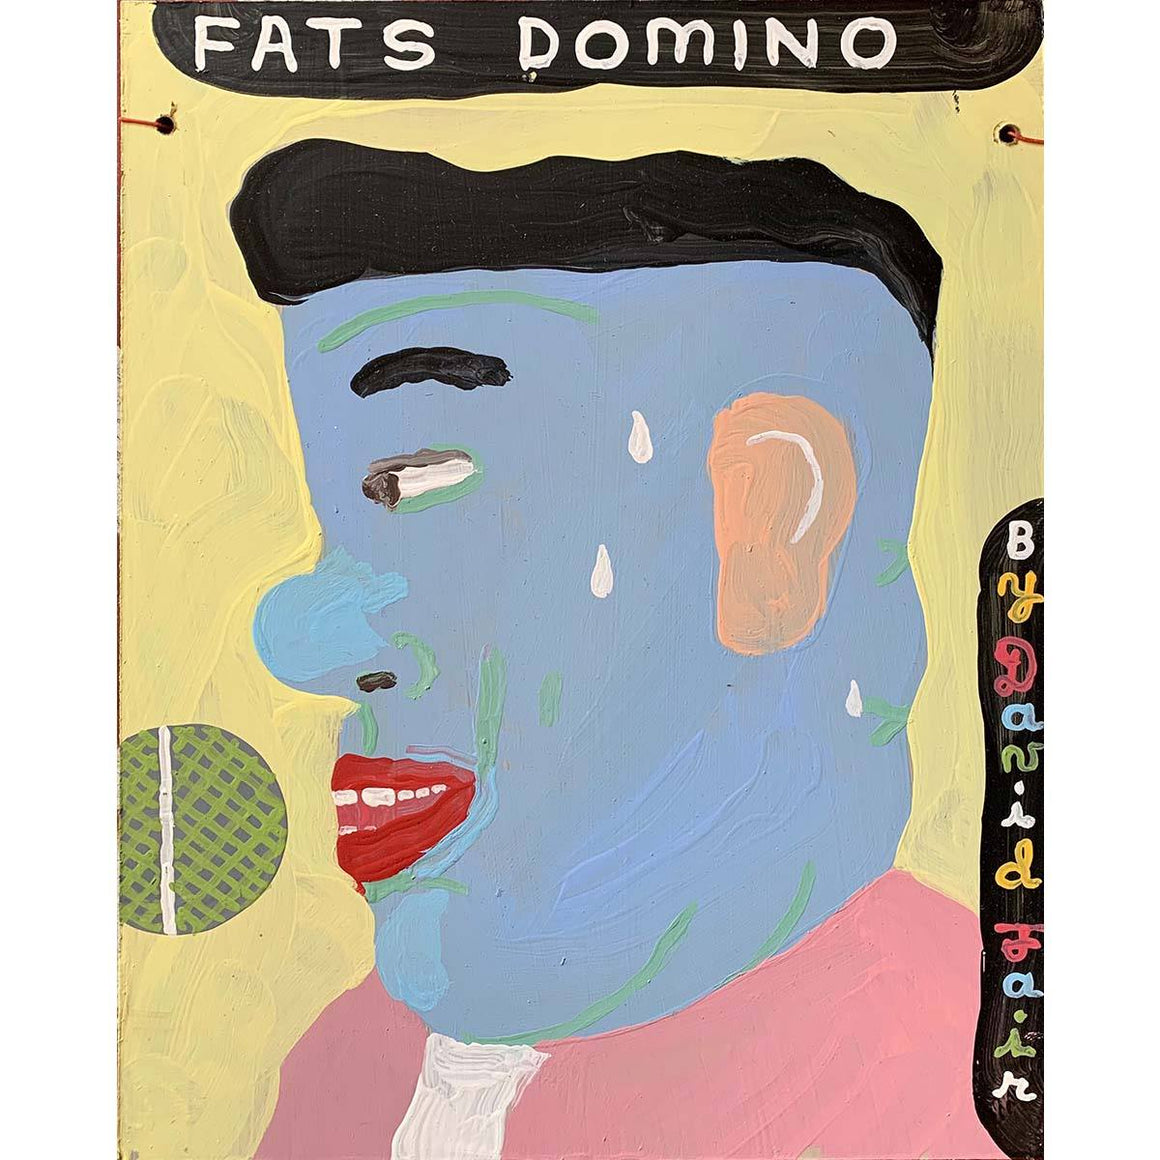 Fats Domino - David Fair - Yard Dog Art